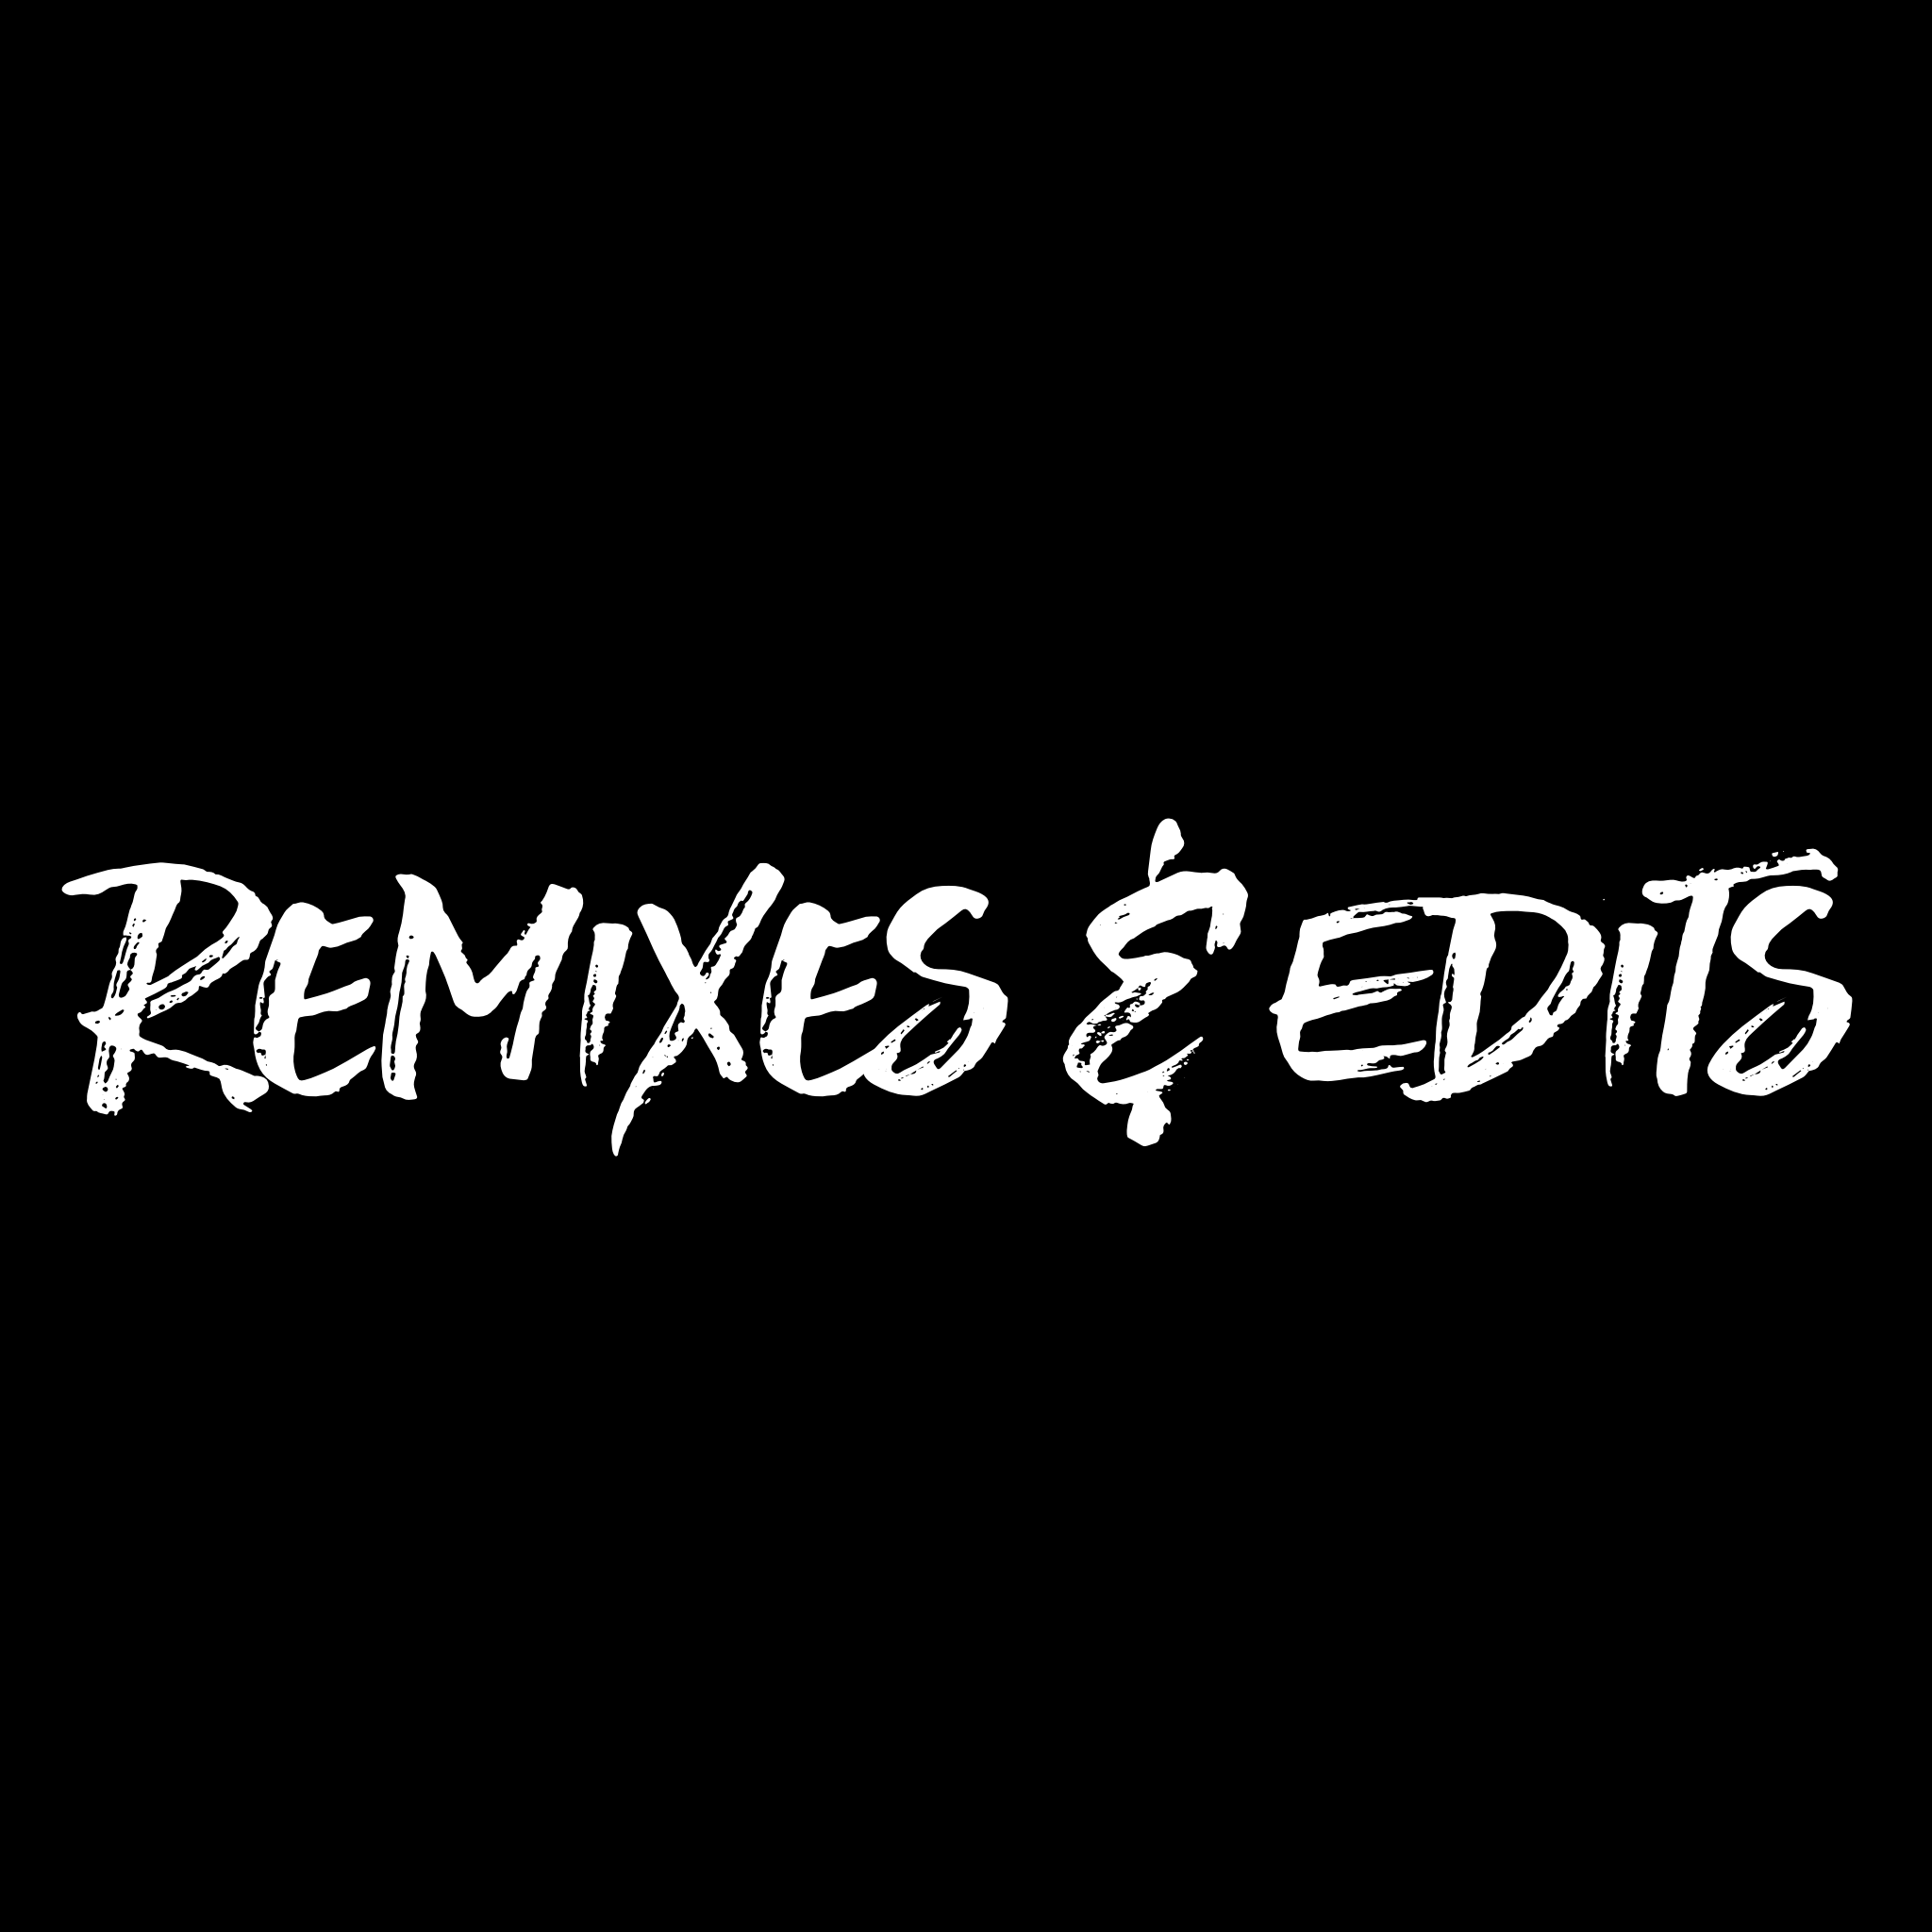 Remixes & Edits Wht on Blk square.png